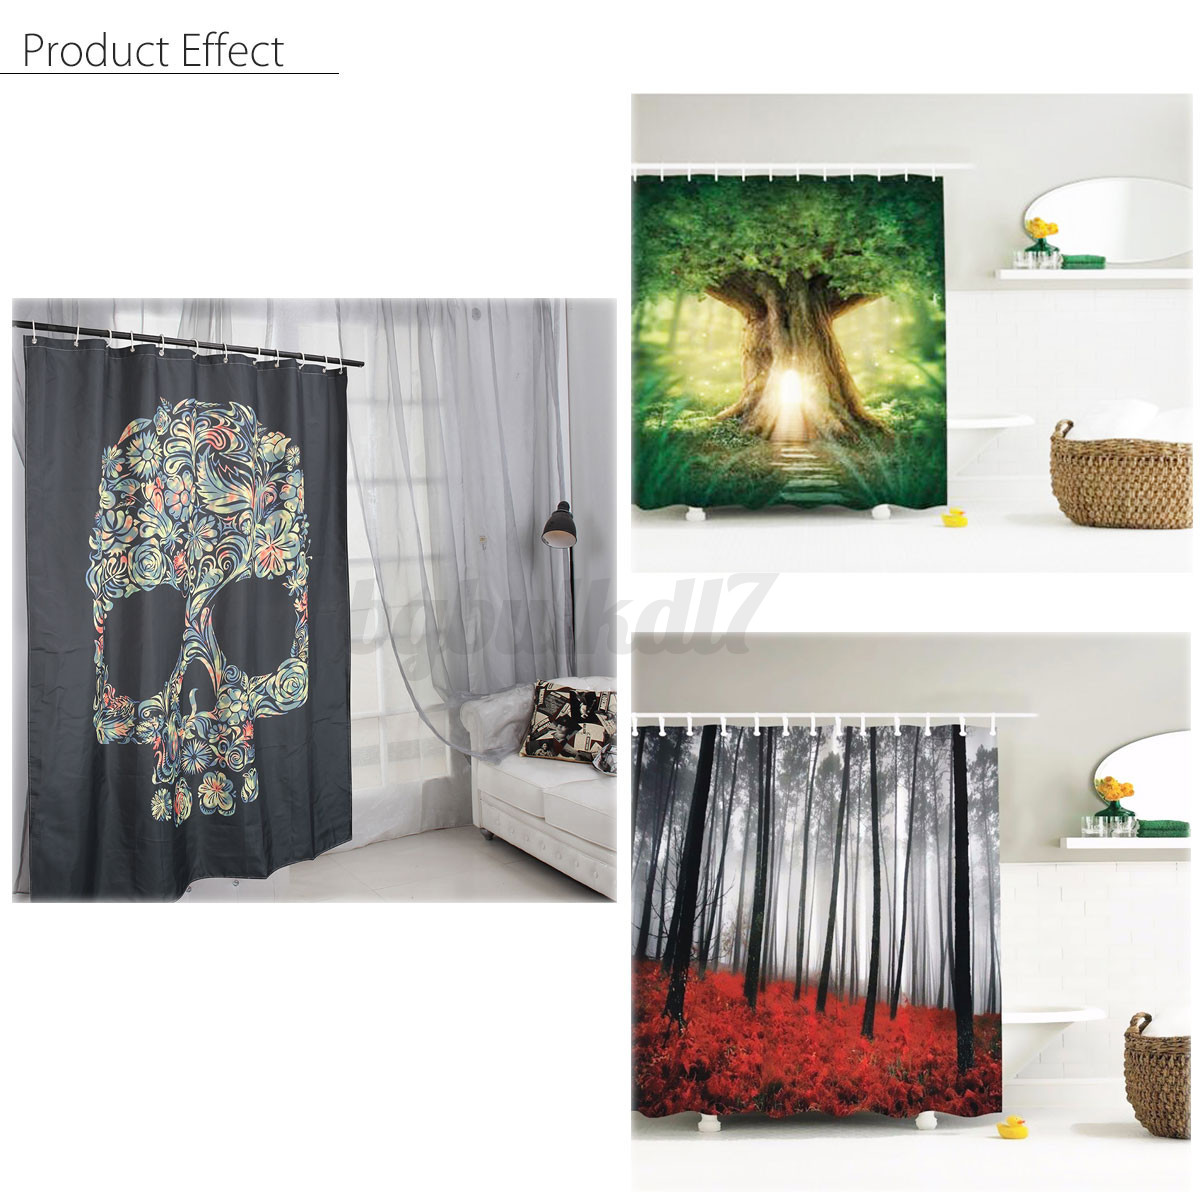 ... Waterproof Polyester Fabric Bathroom Shower Curtain Decor With Hooks